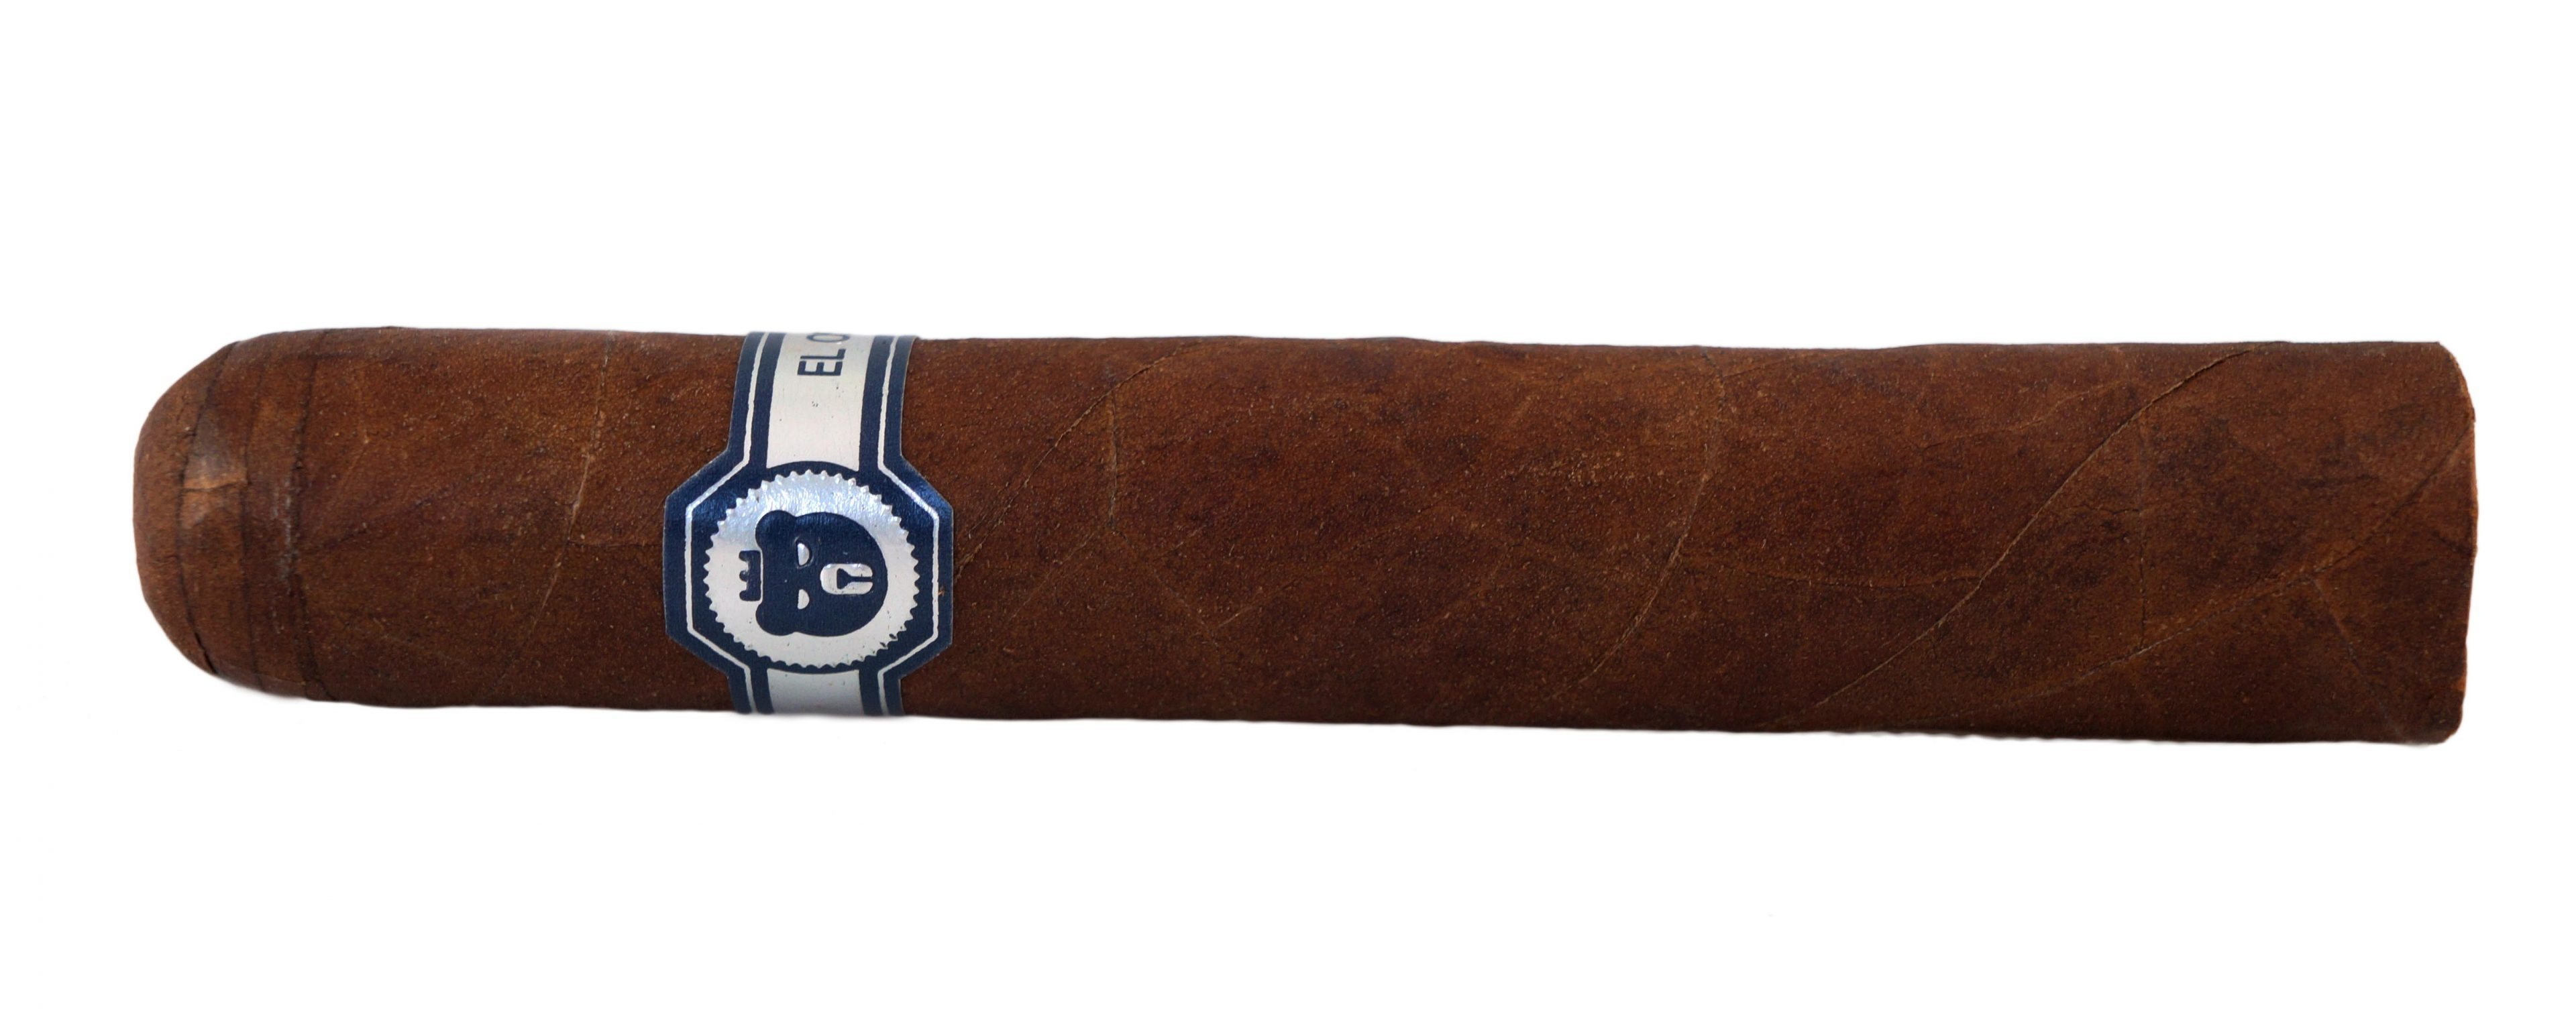 Blind Cigar Review: Warped | El Oso Cub